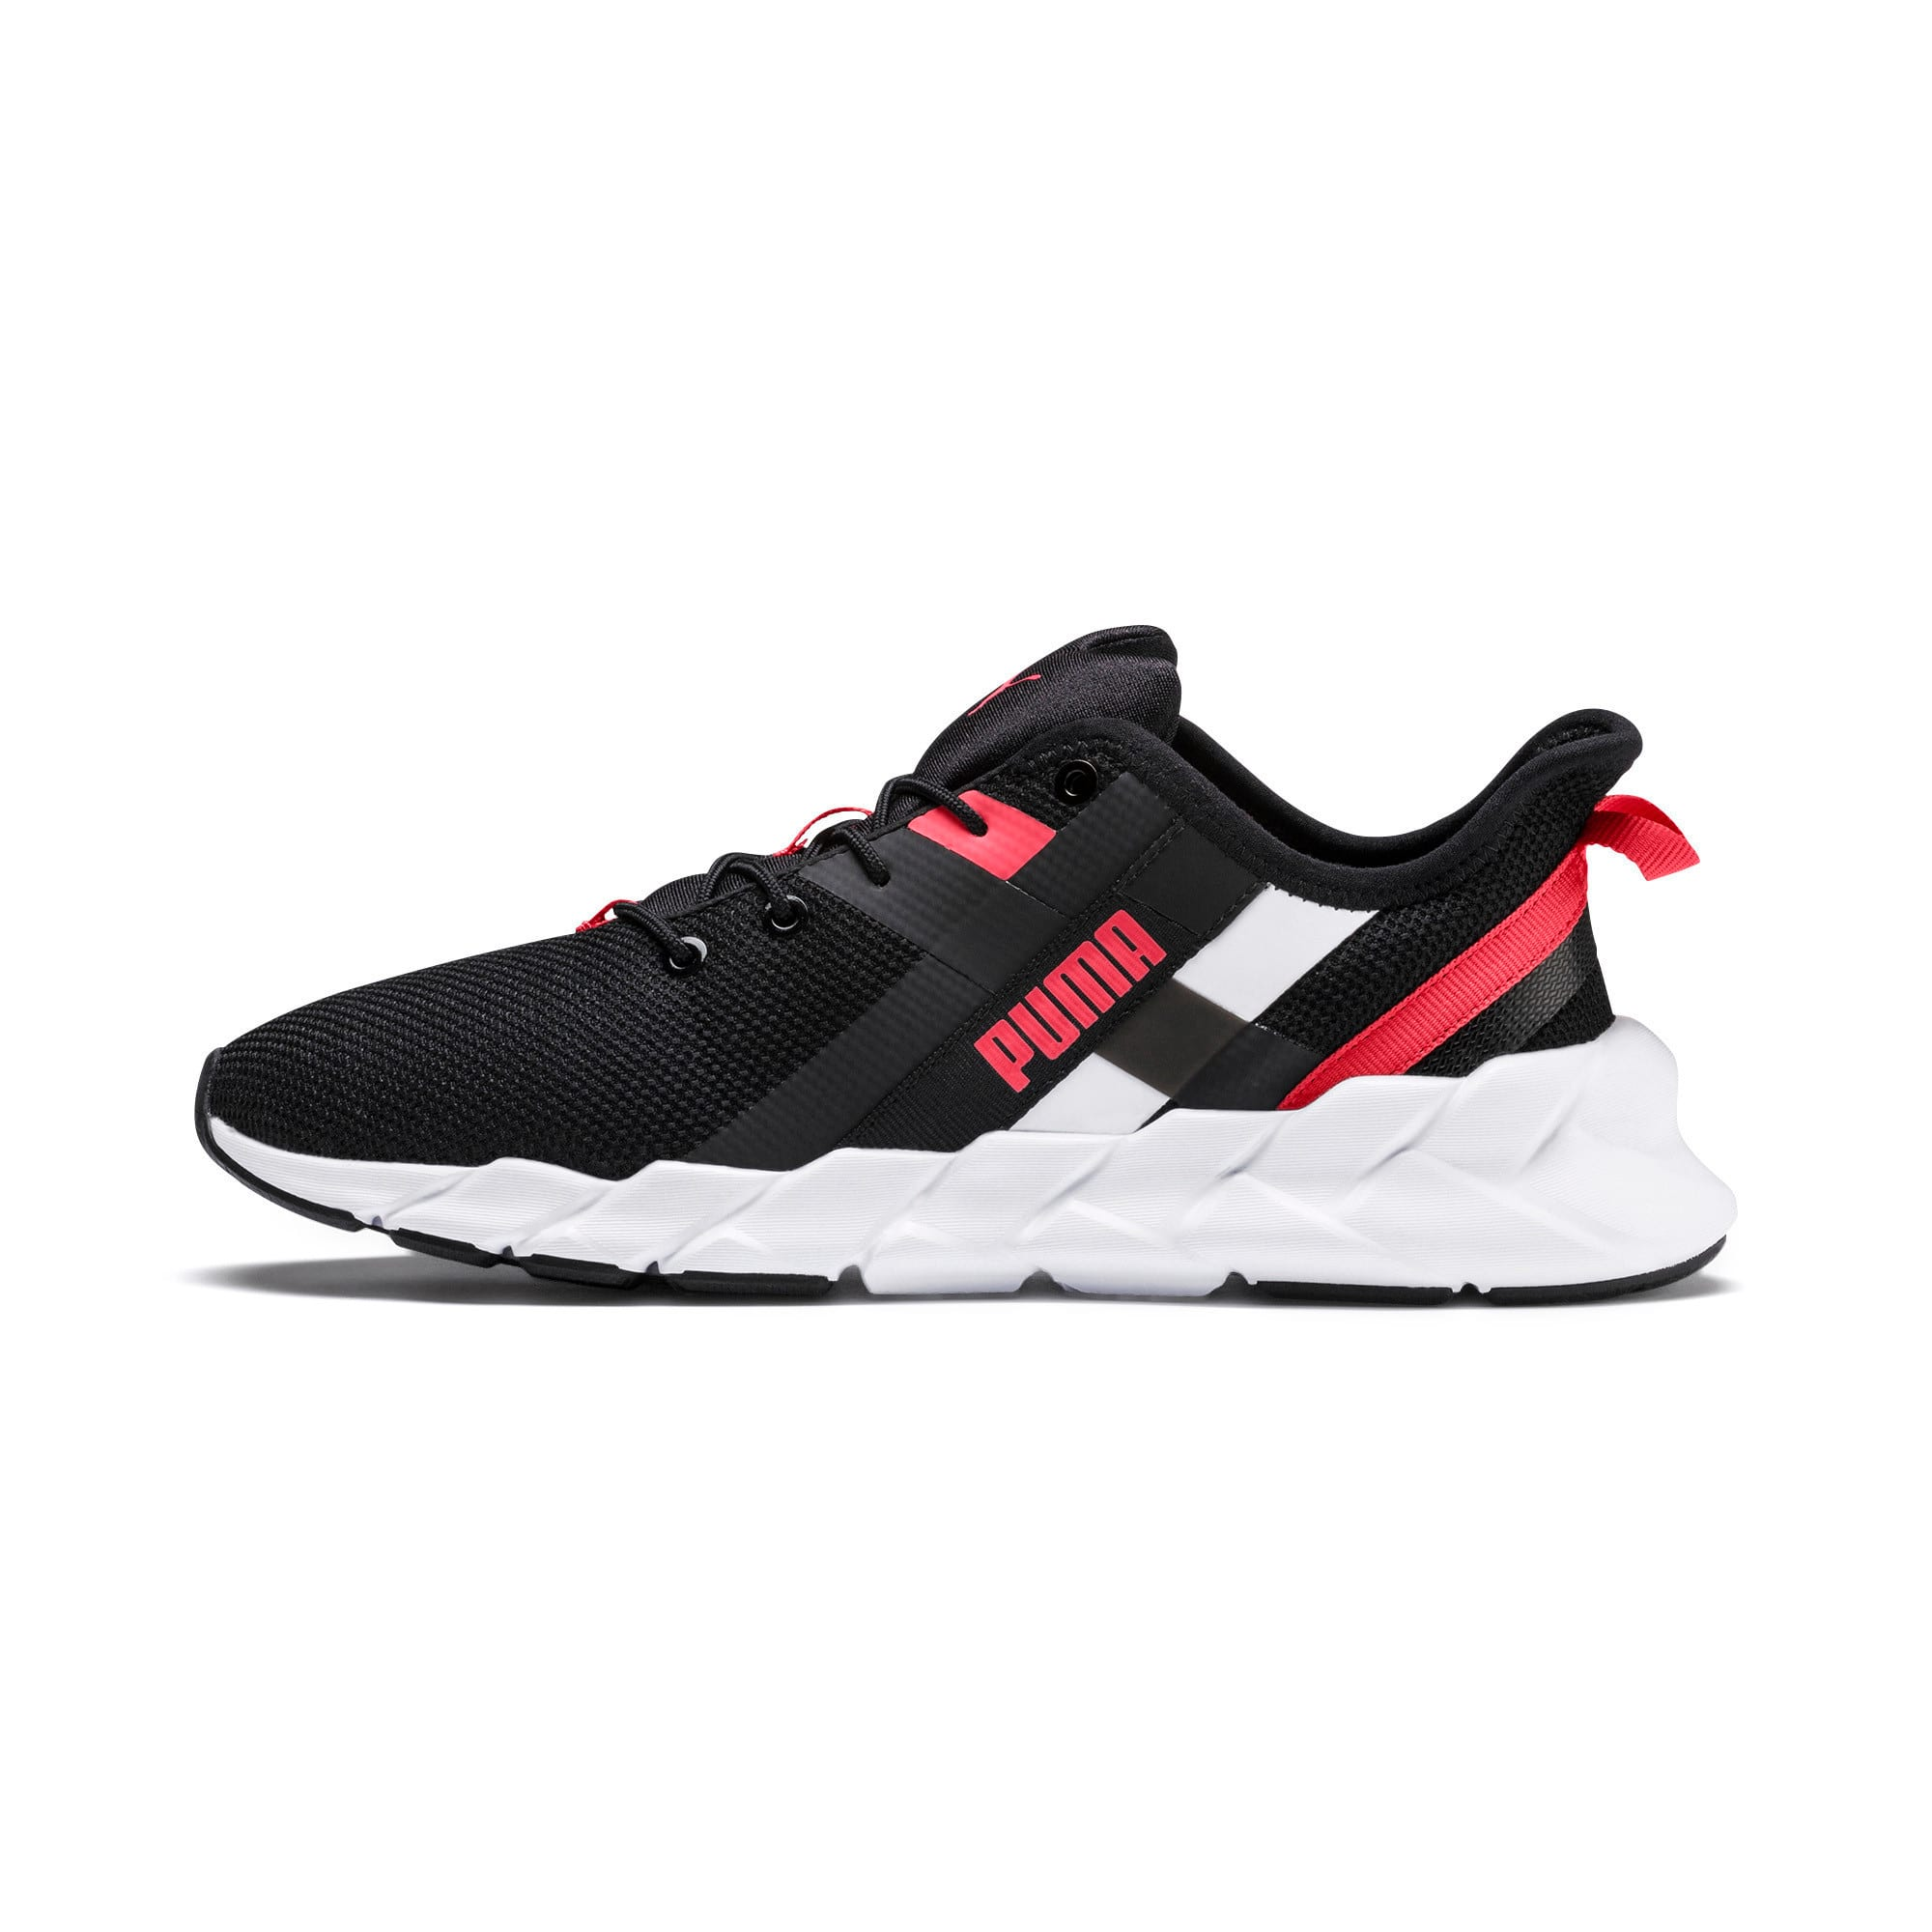 Thumbnail 1 of Weave XT Youth Trainers, Black-White-Calypso Coral, medium-IND